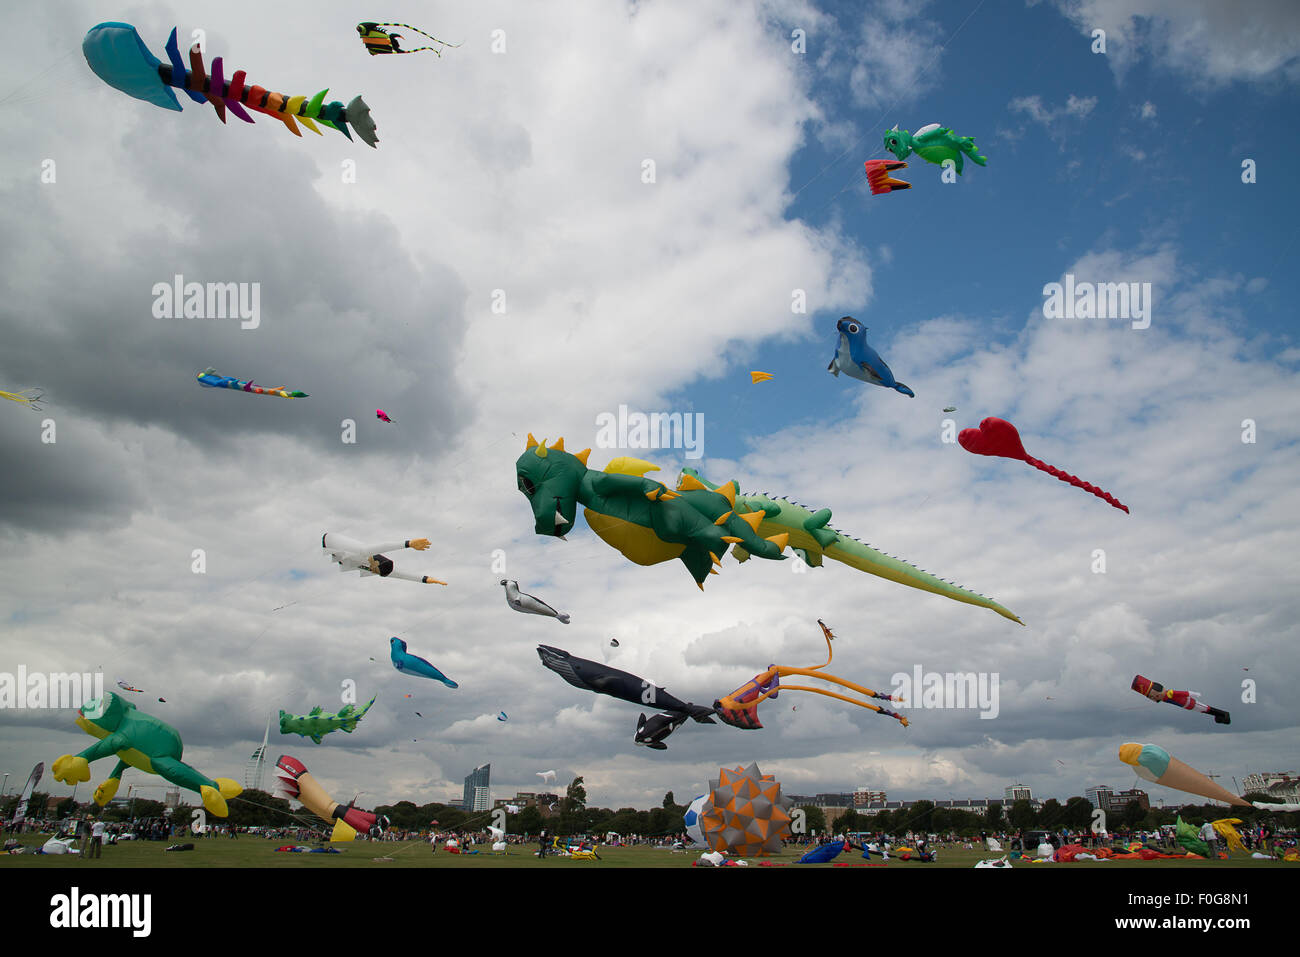 Portsmouth, UK. 15th August 2015. Southsea Common and the sky above it is filled with kites of all shapes and sizes Stock Photo